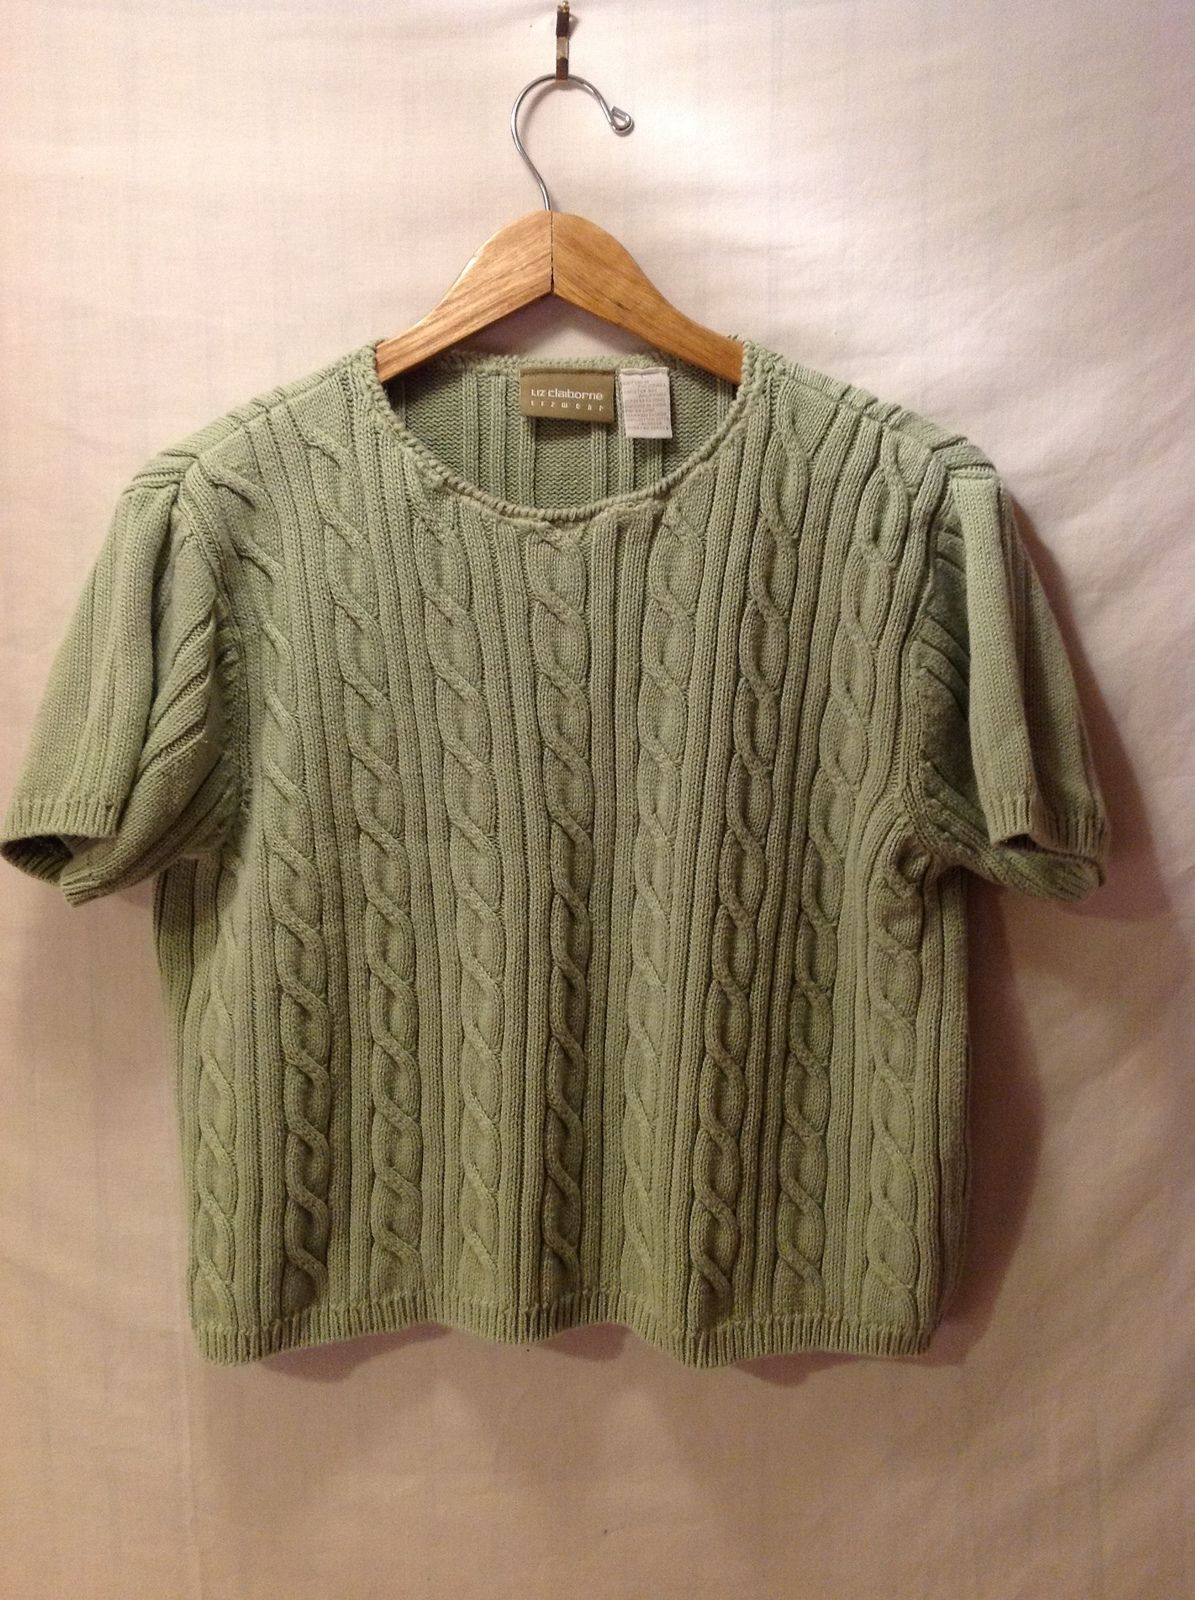 Liz Claiborne Pastel Green Short Sleeve Sweater, Size Large